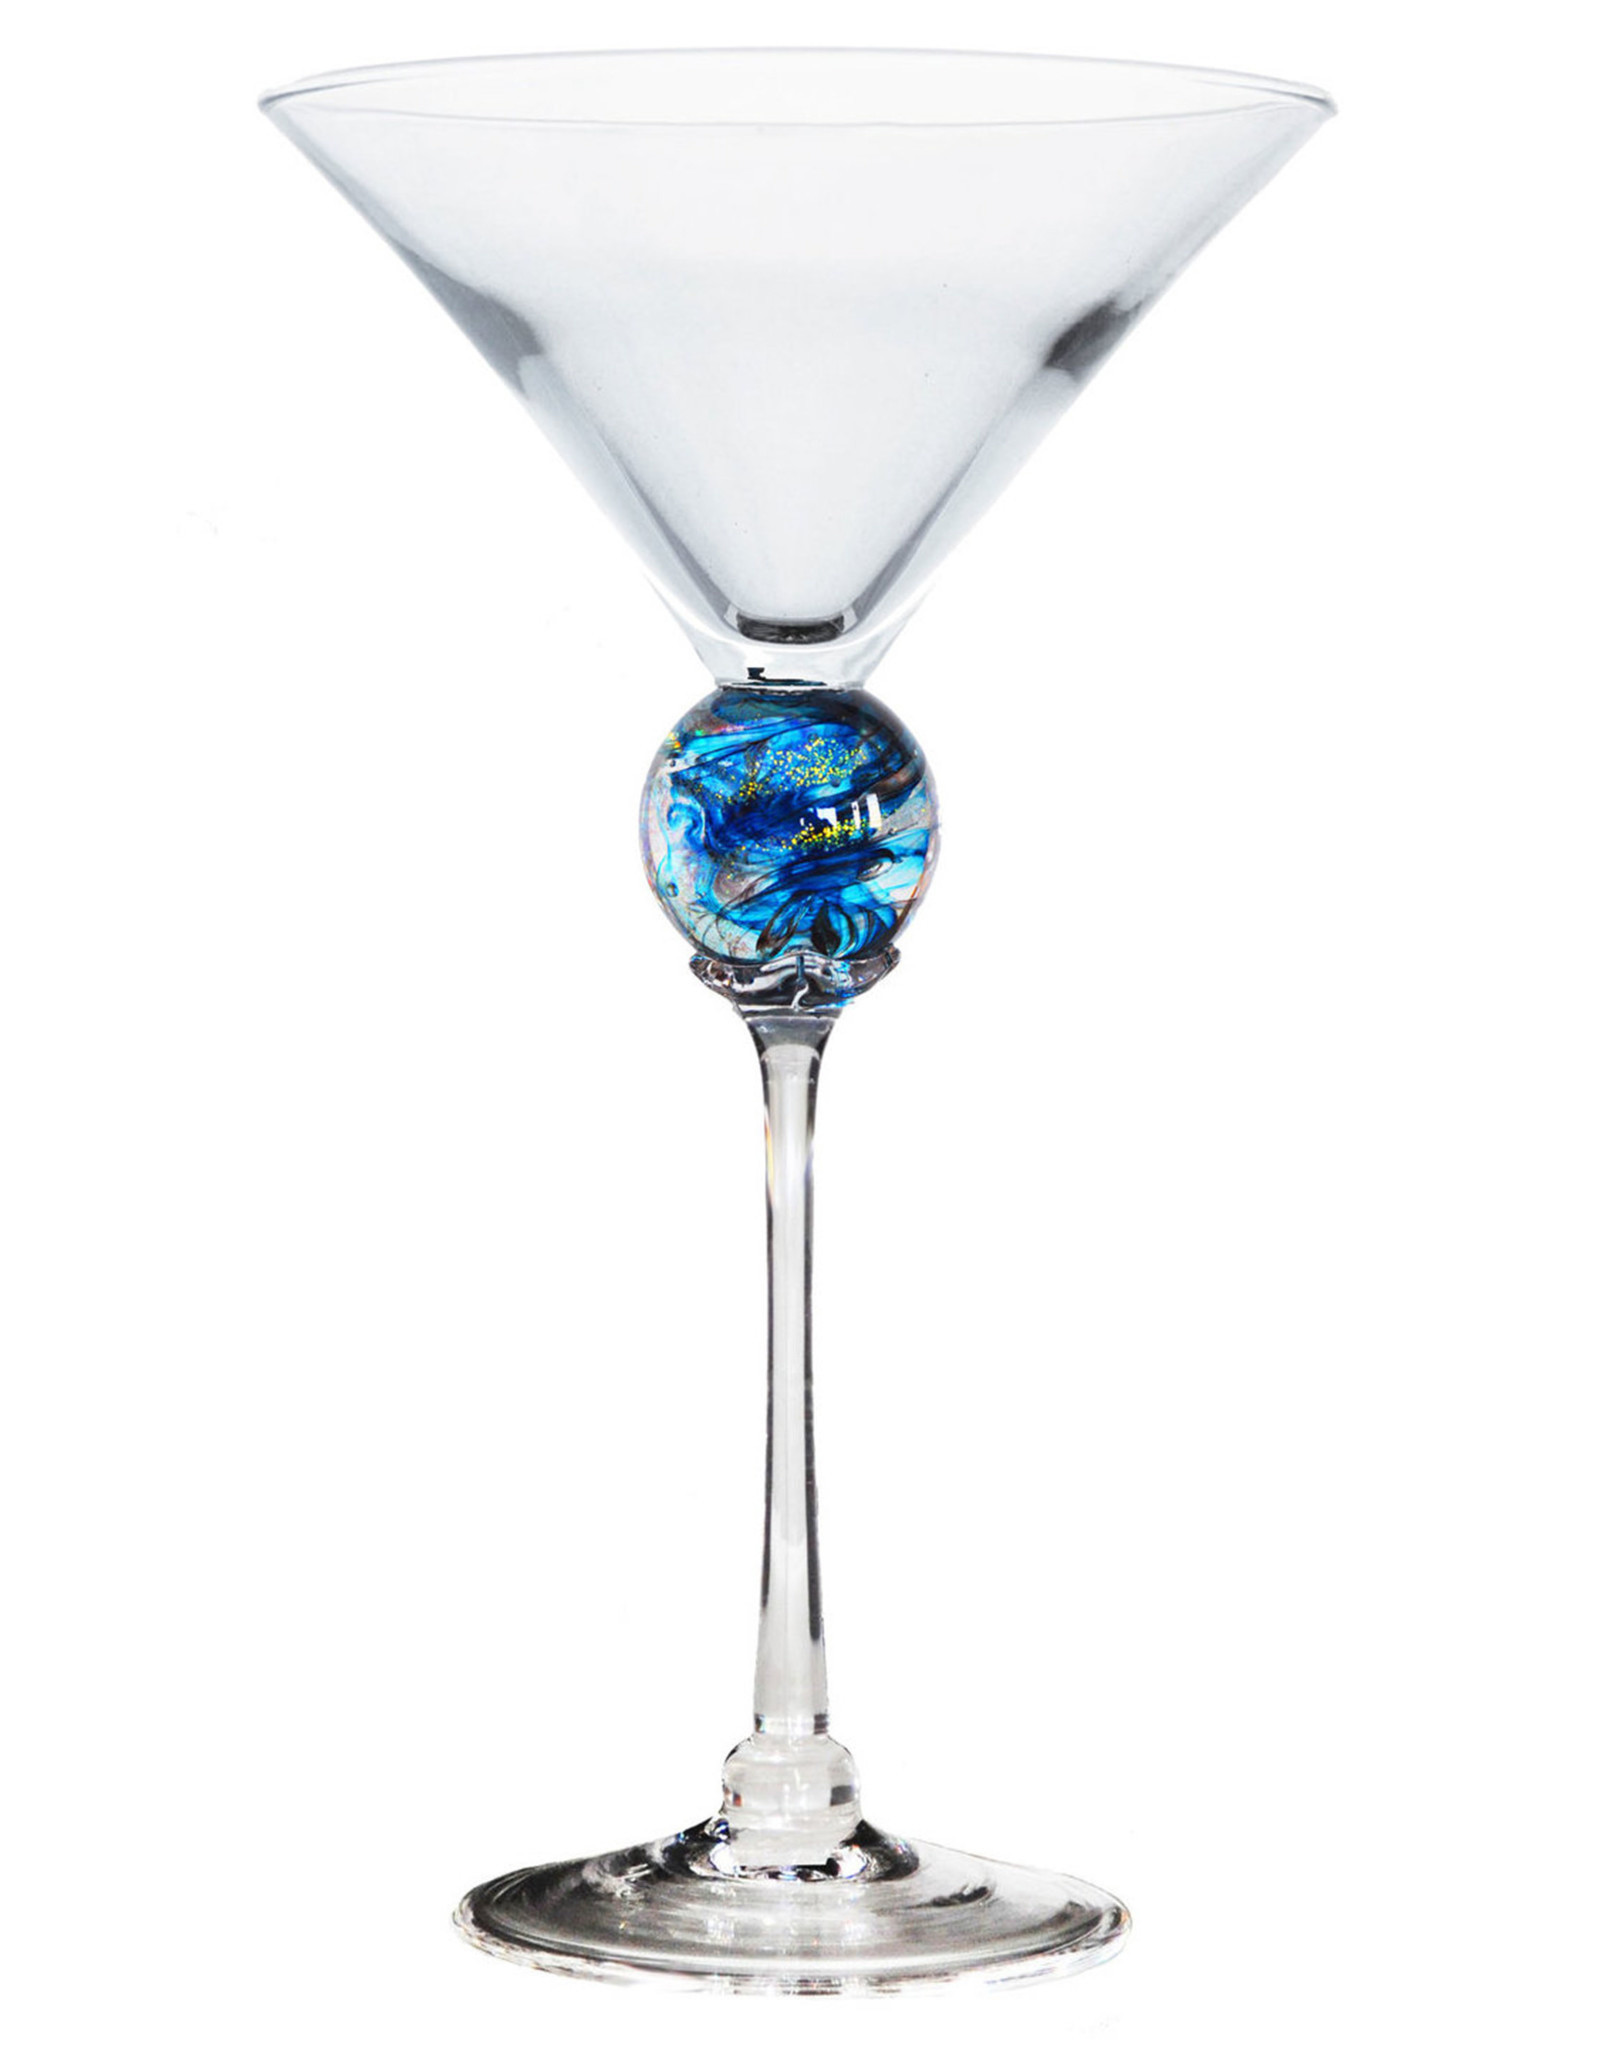 ROMEO GLASS TURQUOISE PLANET MARTINI GLASS